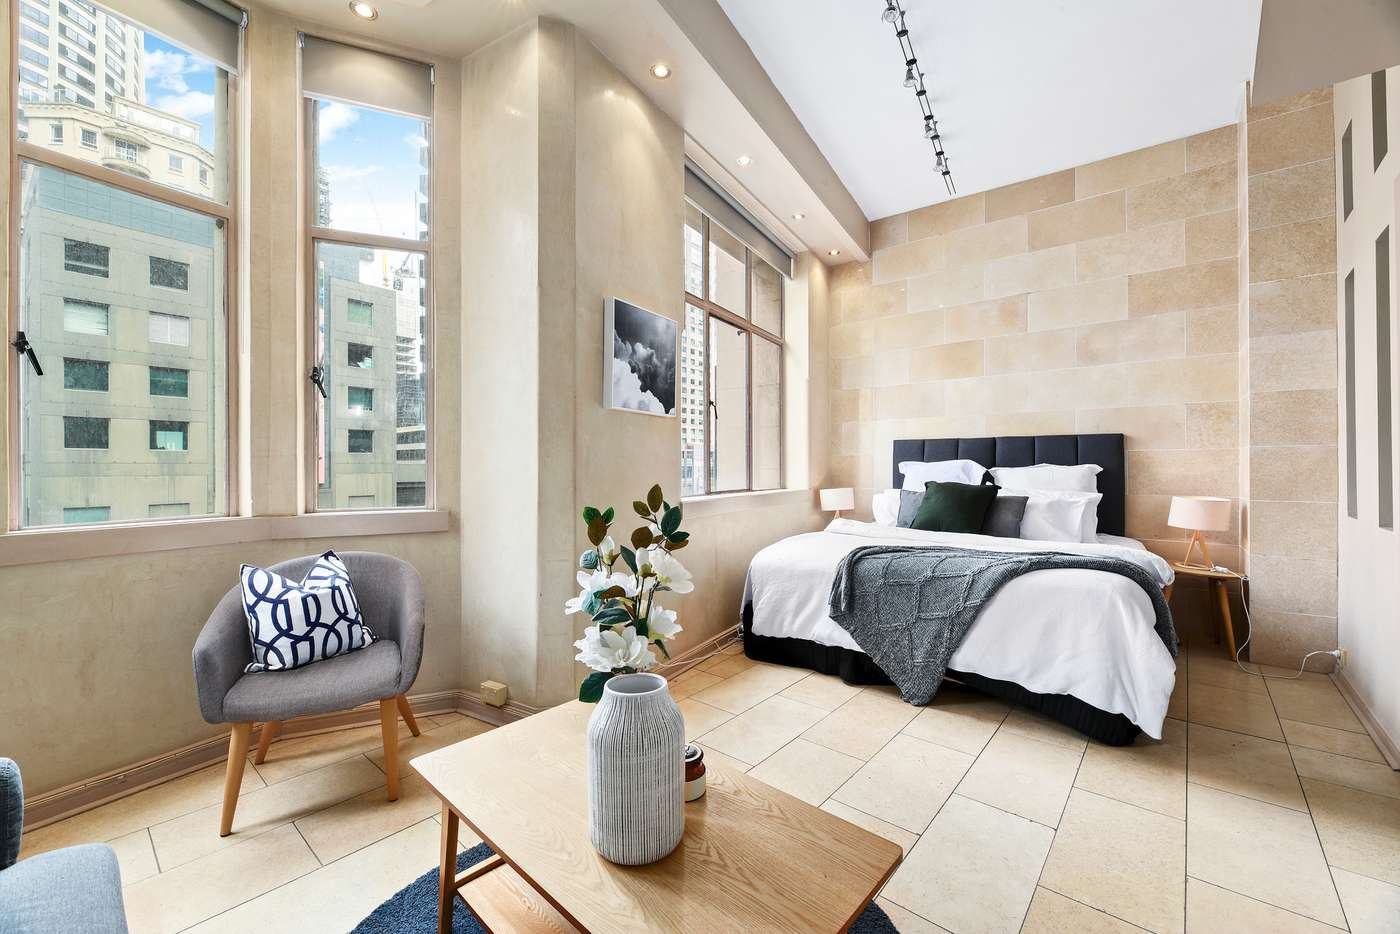 Main view of Homely apartment listing, 702/4 Bridge Street, Sydney NSW 2000